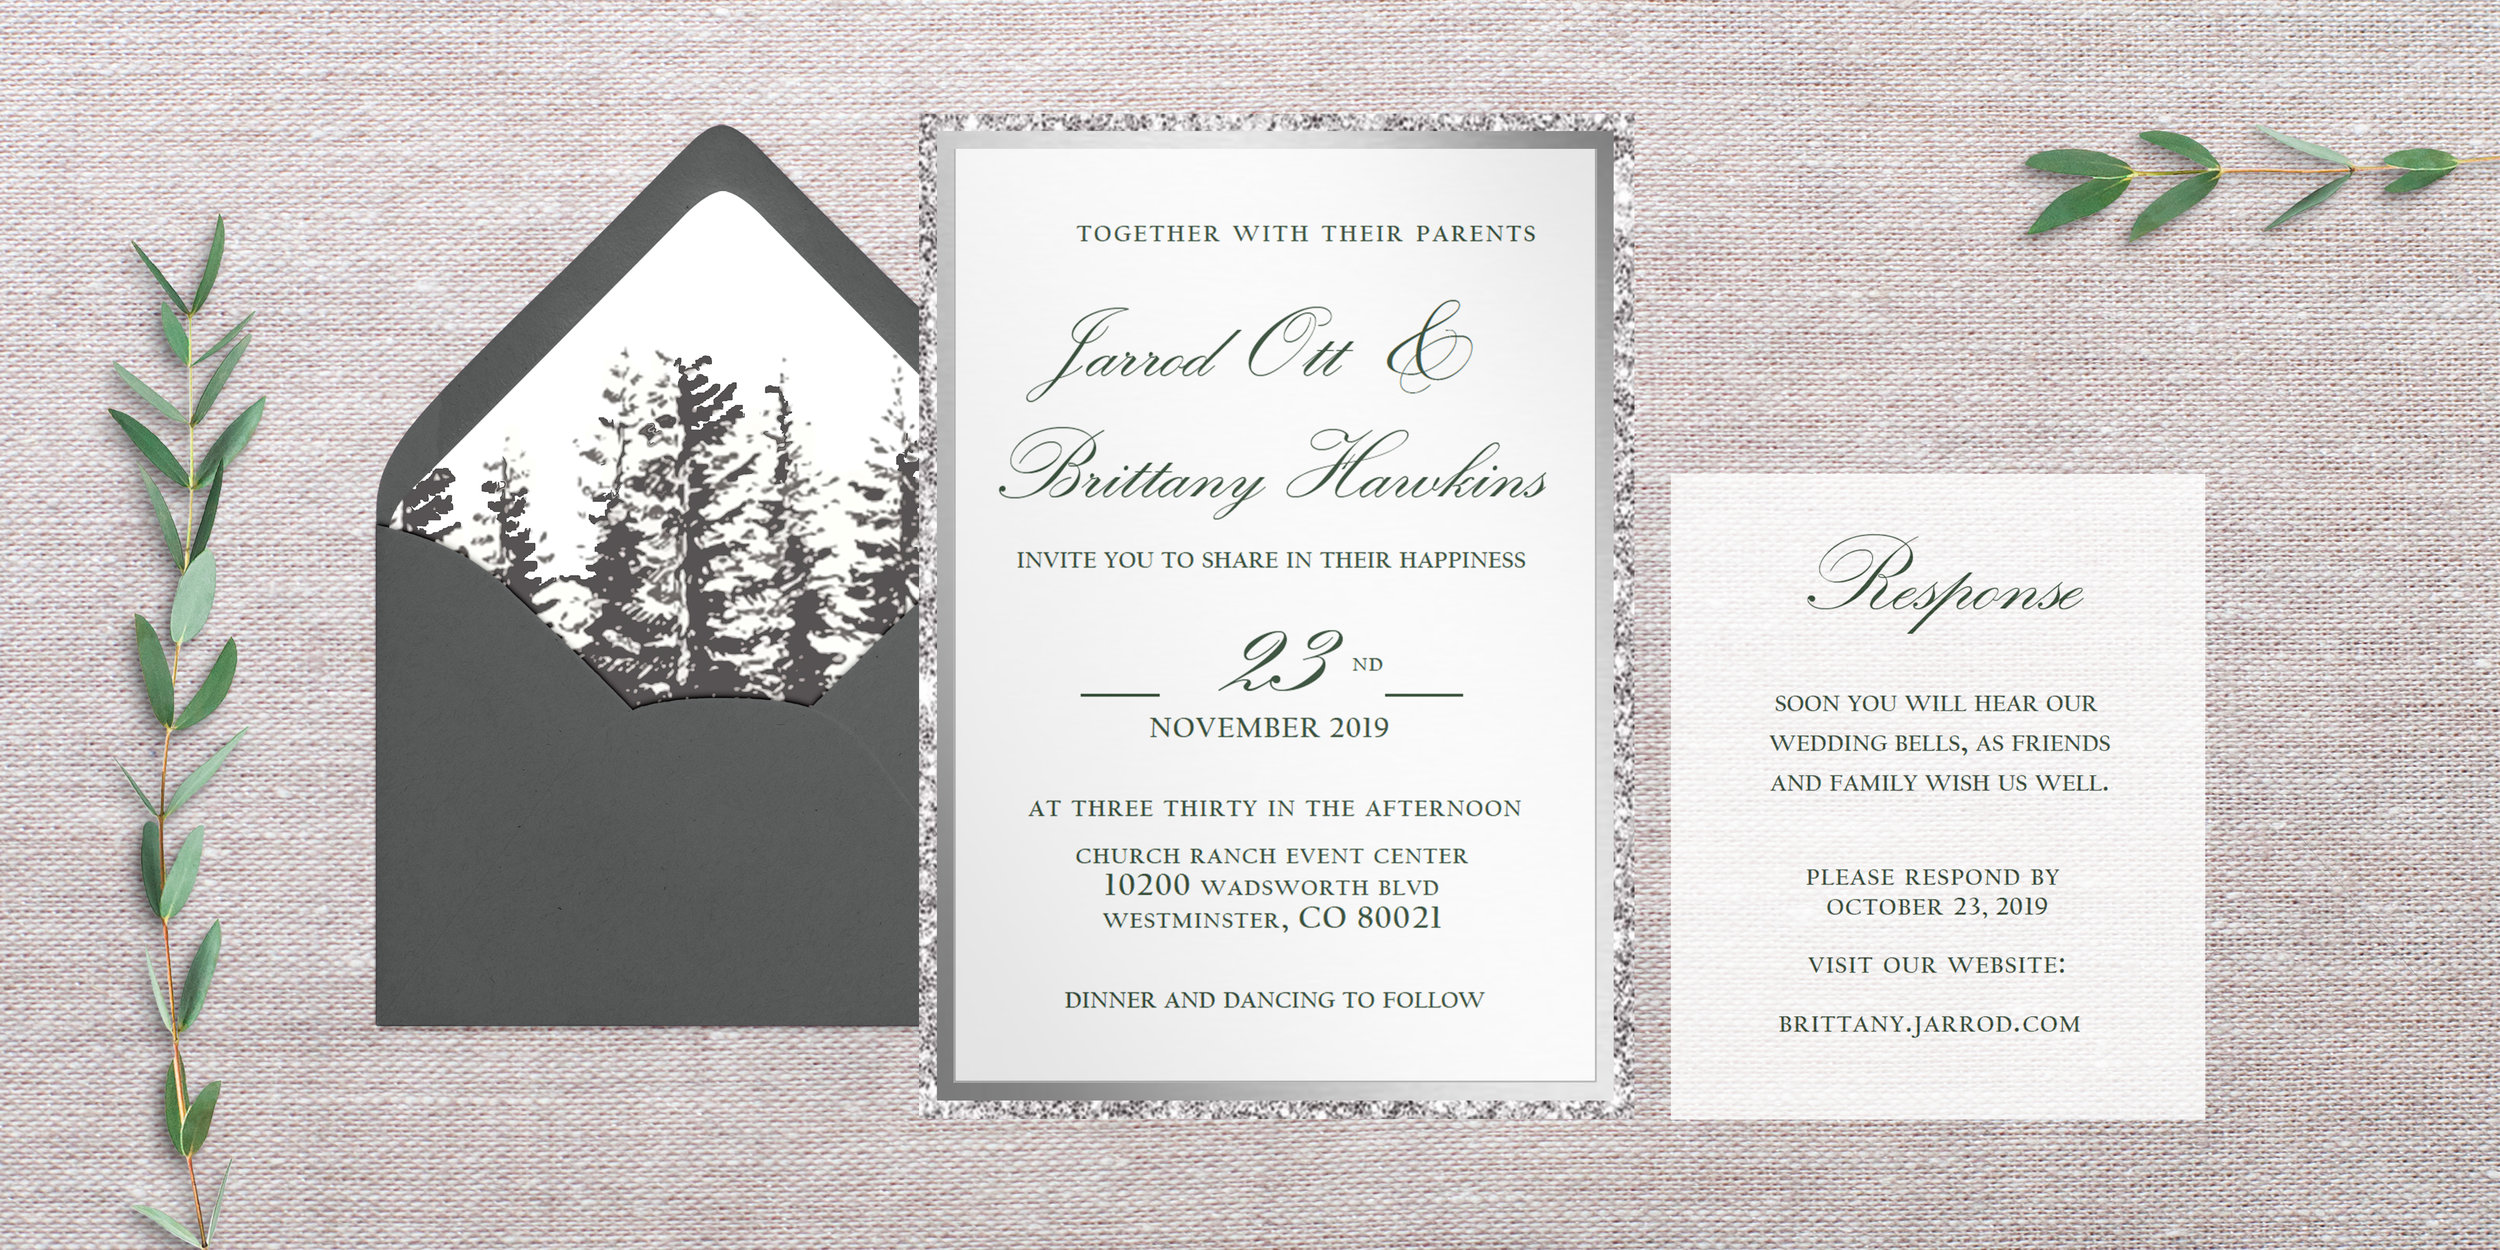 This suite does NOT have the rsvp/web link on the bottom of the invitation. Instead there is a response card, which includes the web address and a specific time to rsvp.   What's needed:  1. What's the correct url/website for RSVPing 2. What exactly would you want the details card to say? Accommodations? Attire? 3. Return Address/Shipping Address  (Submit wording through the form below)   Envelope Colors:  dark grey  Upgrade:  silver + mirror backing, with brads  Quantity:  180  Paper Color:  vellum Paper Texture: vellum  Envelope Liner:  Pine Trees